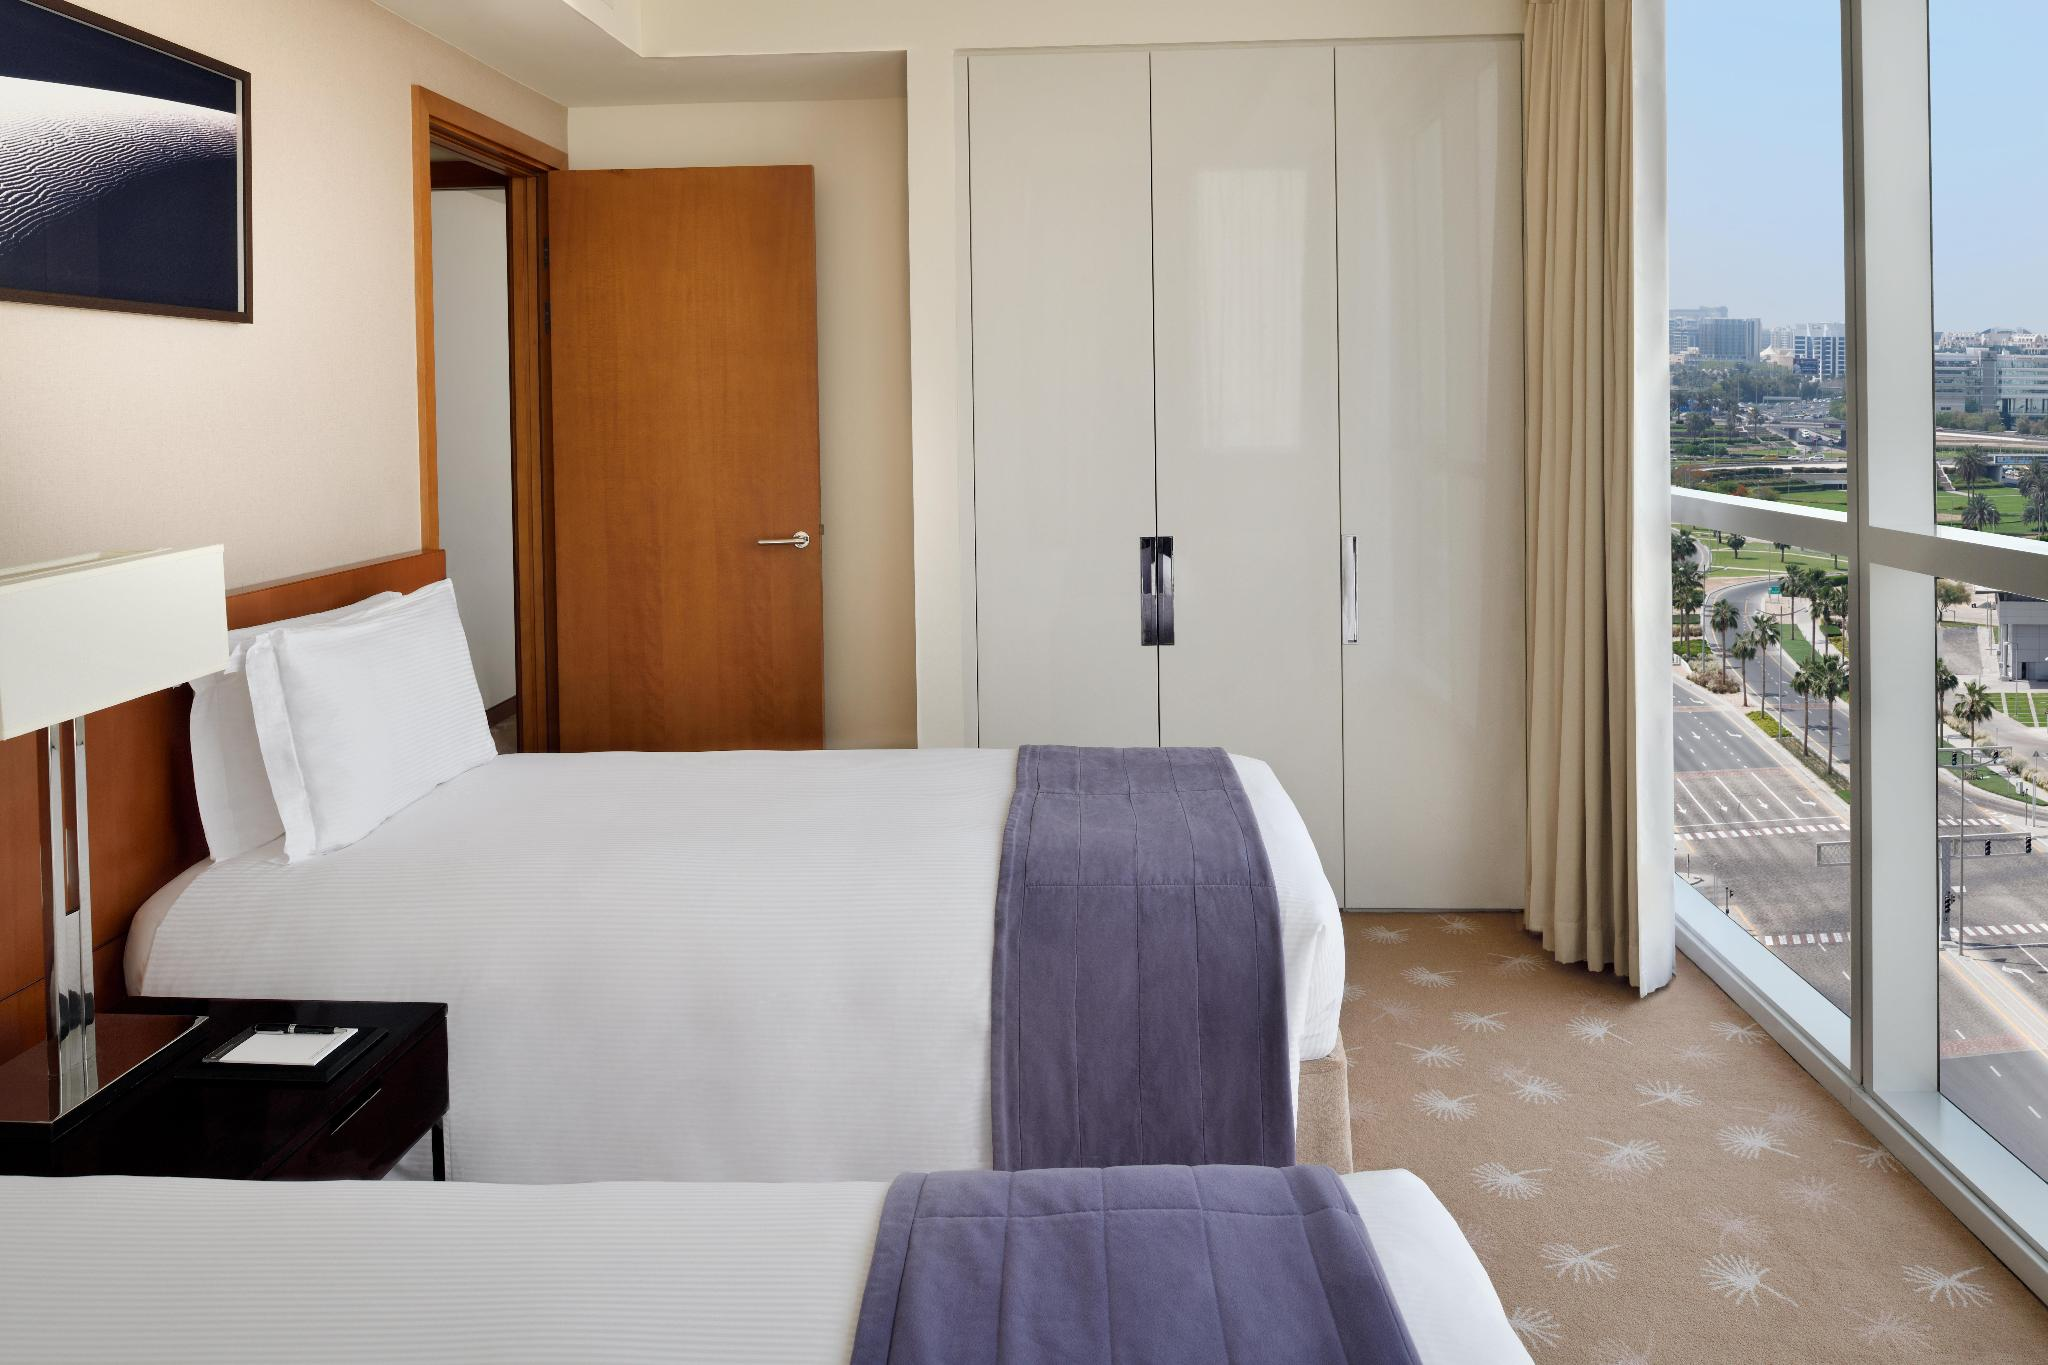 TWO BEDROOM SUITE CITY VIEW